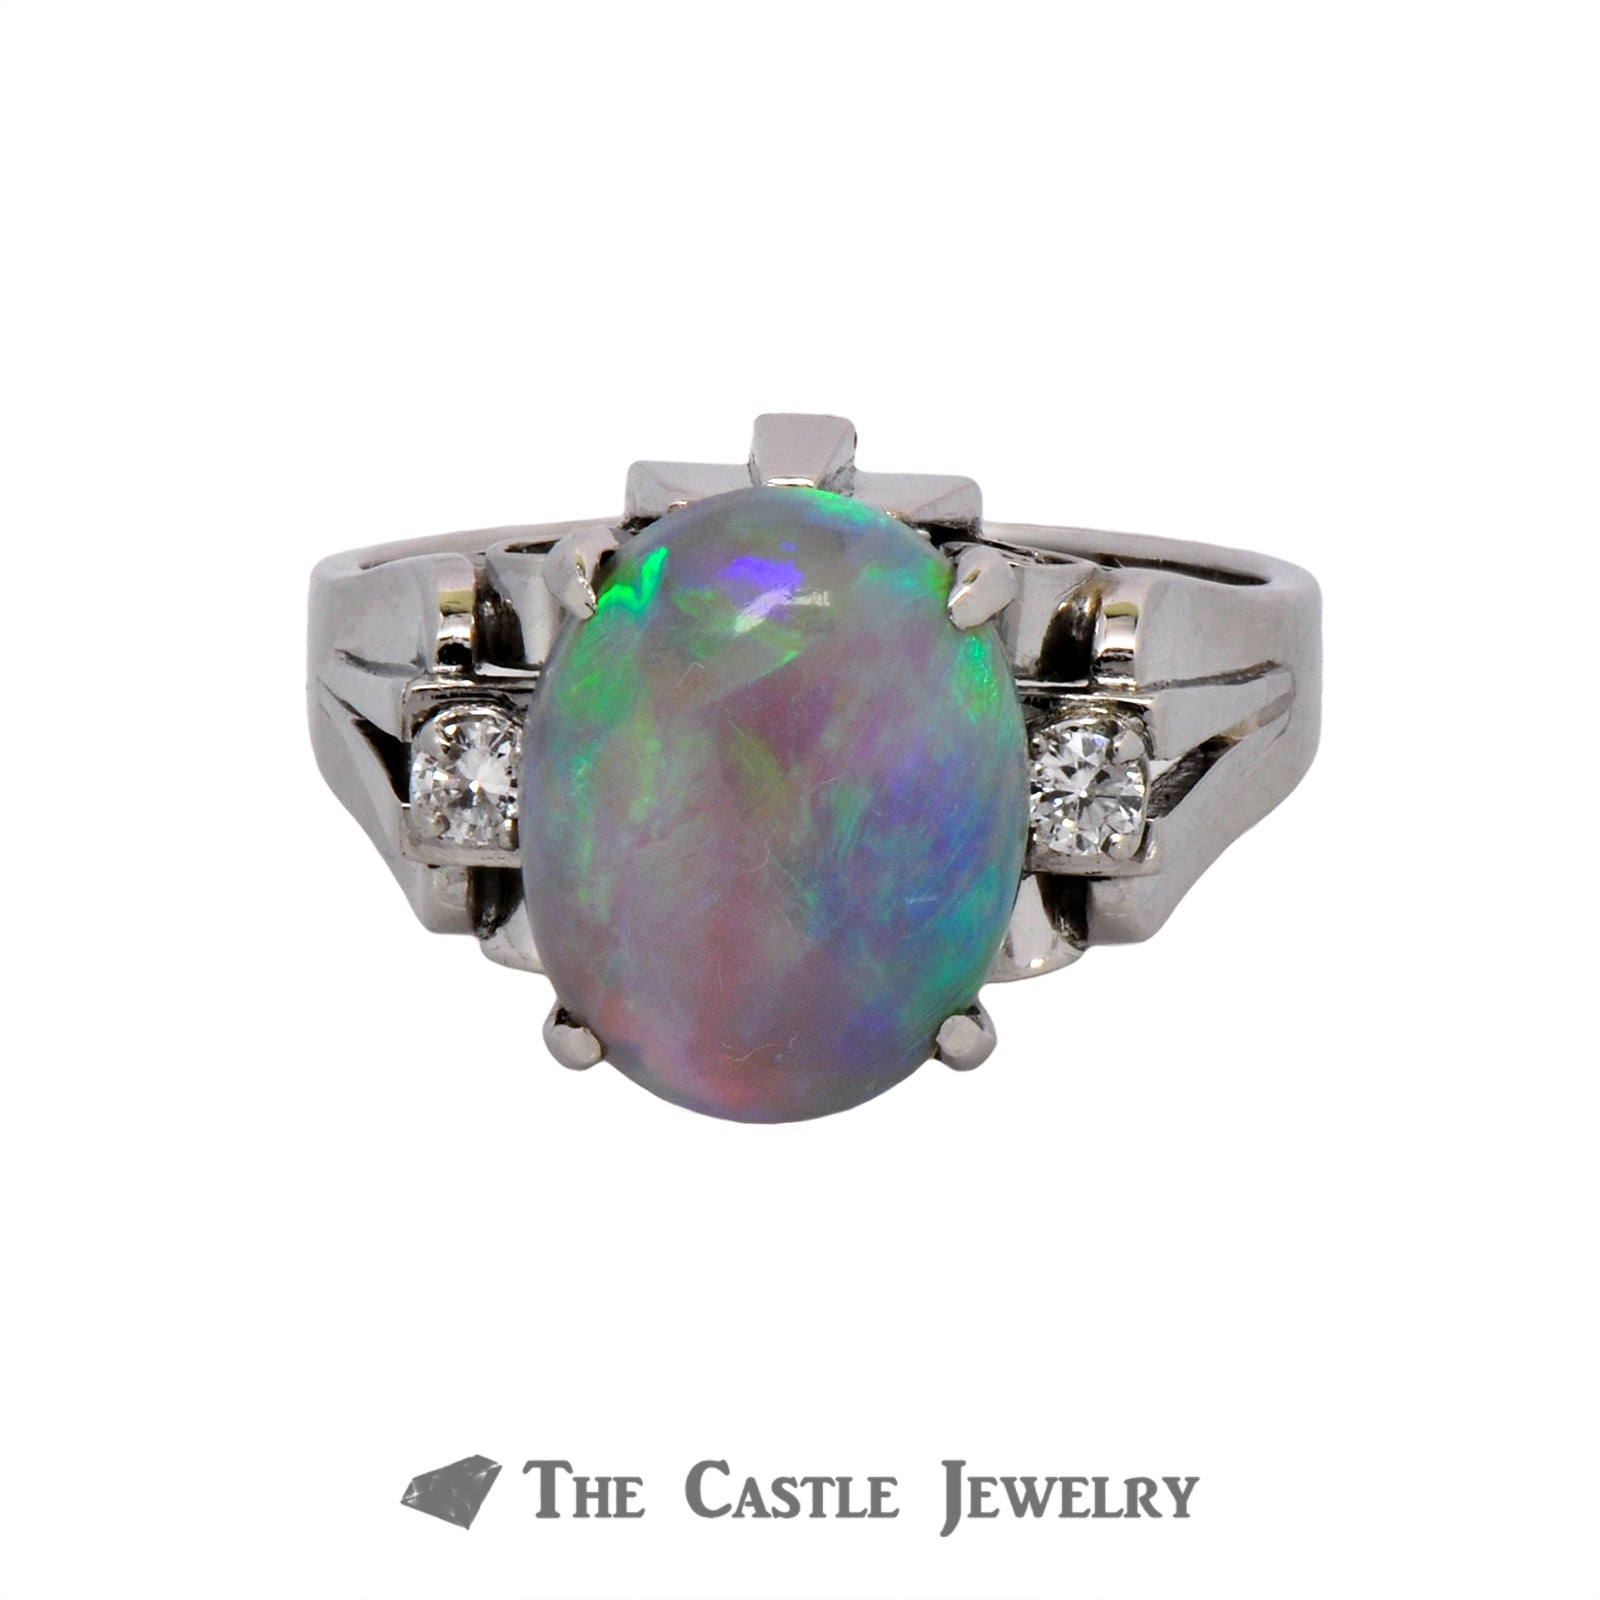 Vintage Opal Ring with Diamond Accents Crafted in a Platinum Cathedral Mounting-0